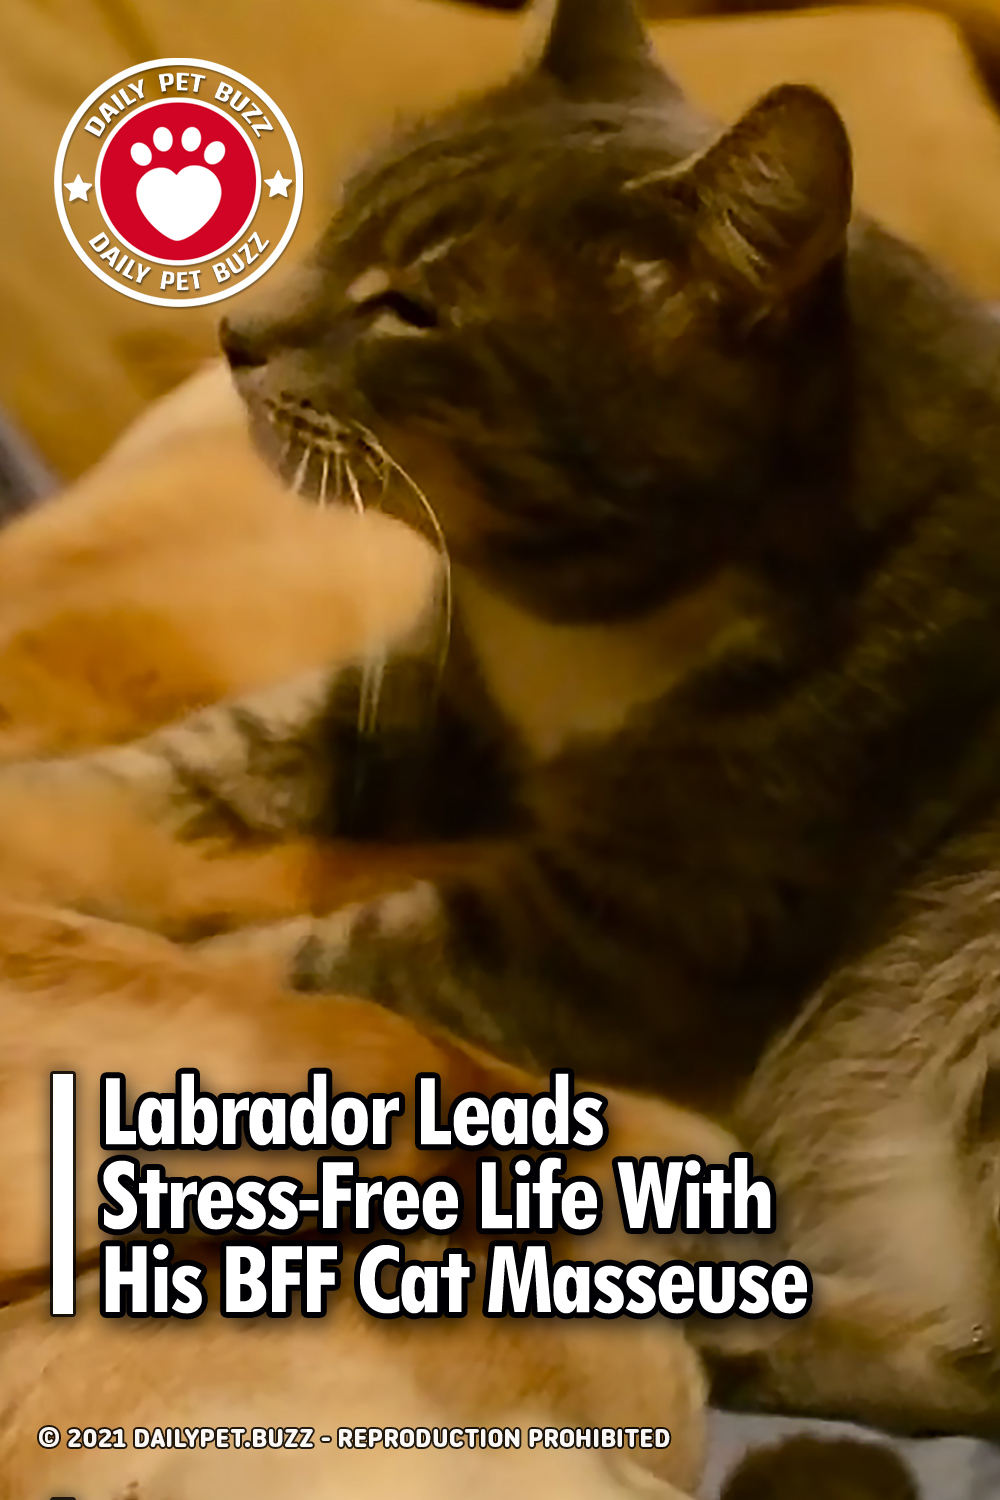 Labrador Leads Stress-Free Life With His BFF Cat Masseuse